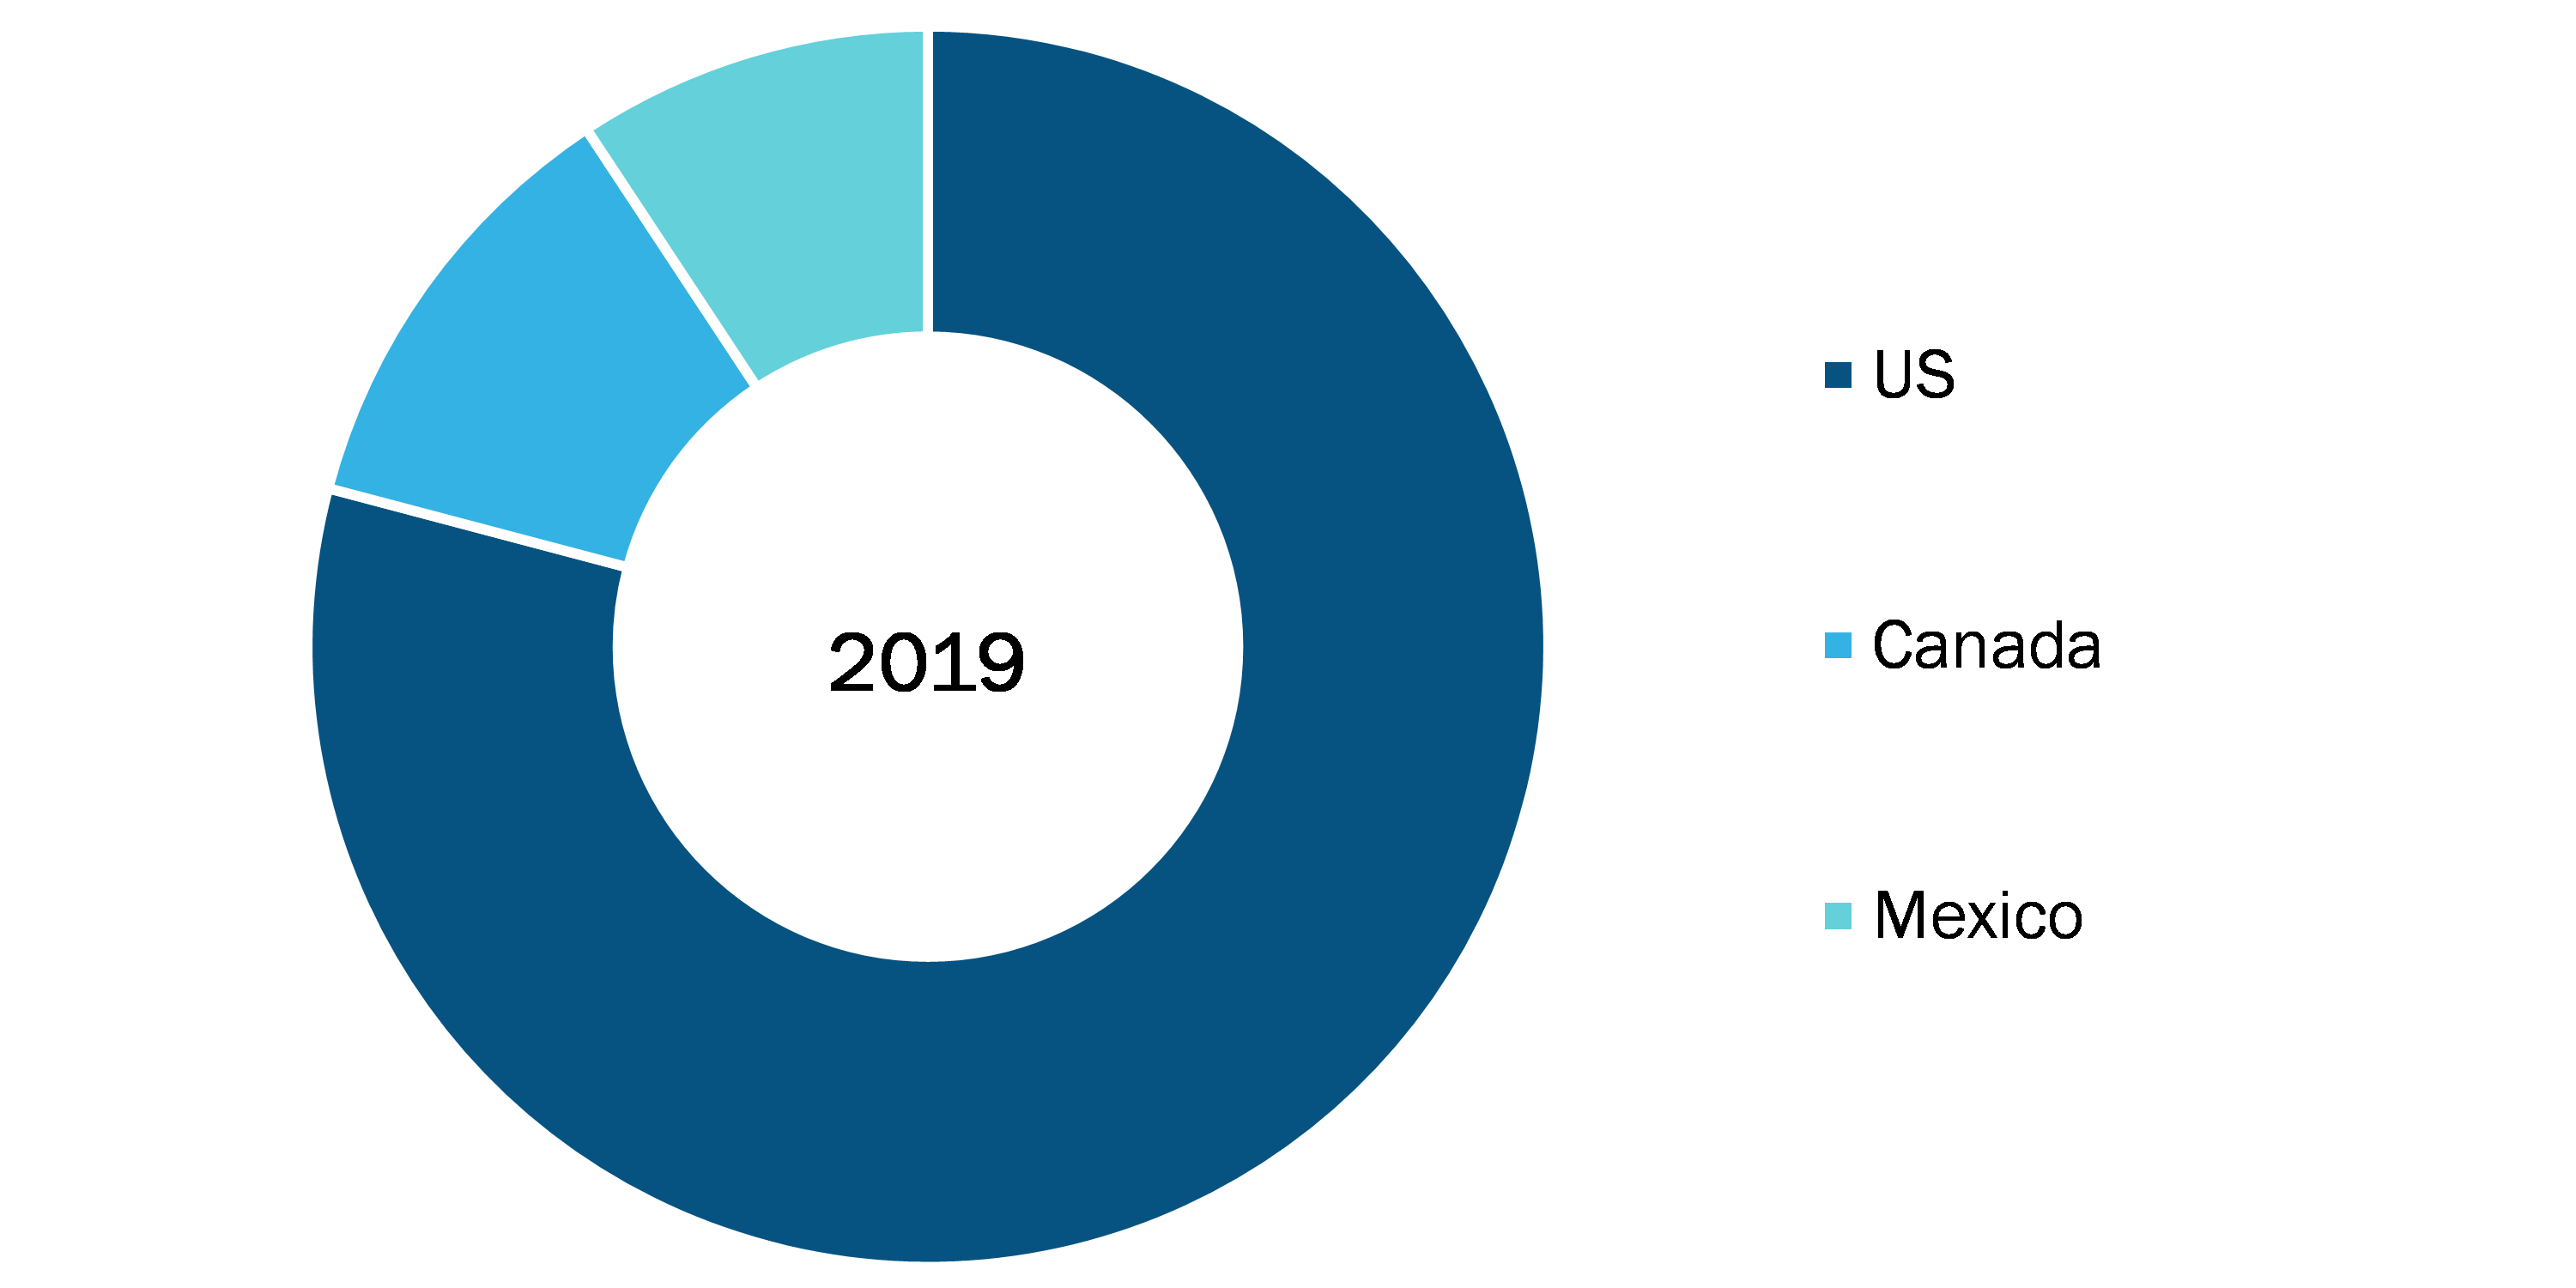 North America OTC Drug and Dietary Supplement Market, By Country, 2019 (%)